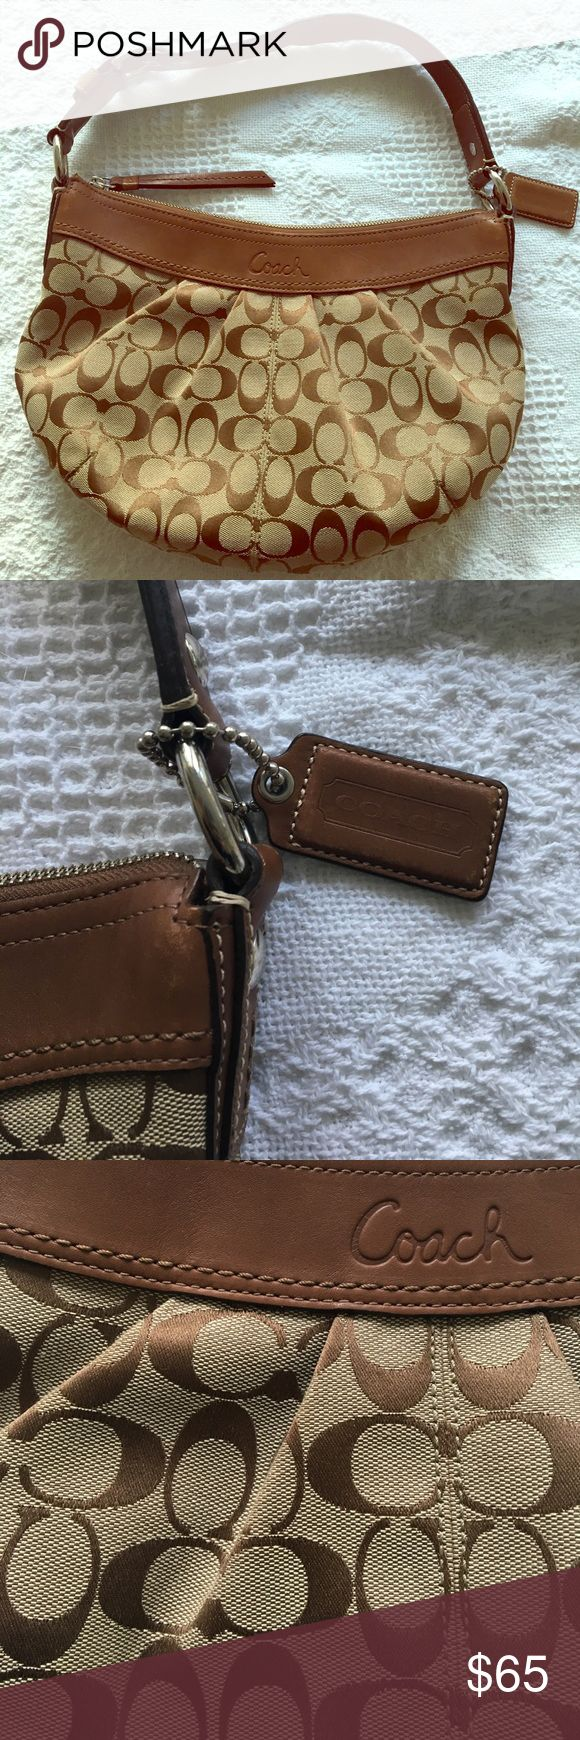 Coach bag- brown leather detailing/ classic print Great condition, very clean coach purse with the classic coach print. Adjustable strap detailing. This bag goes with everything! Coach Bags Shoulder Bags